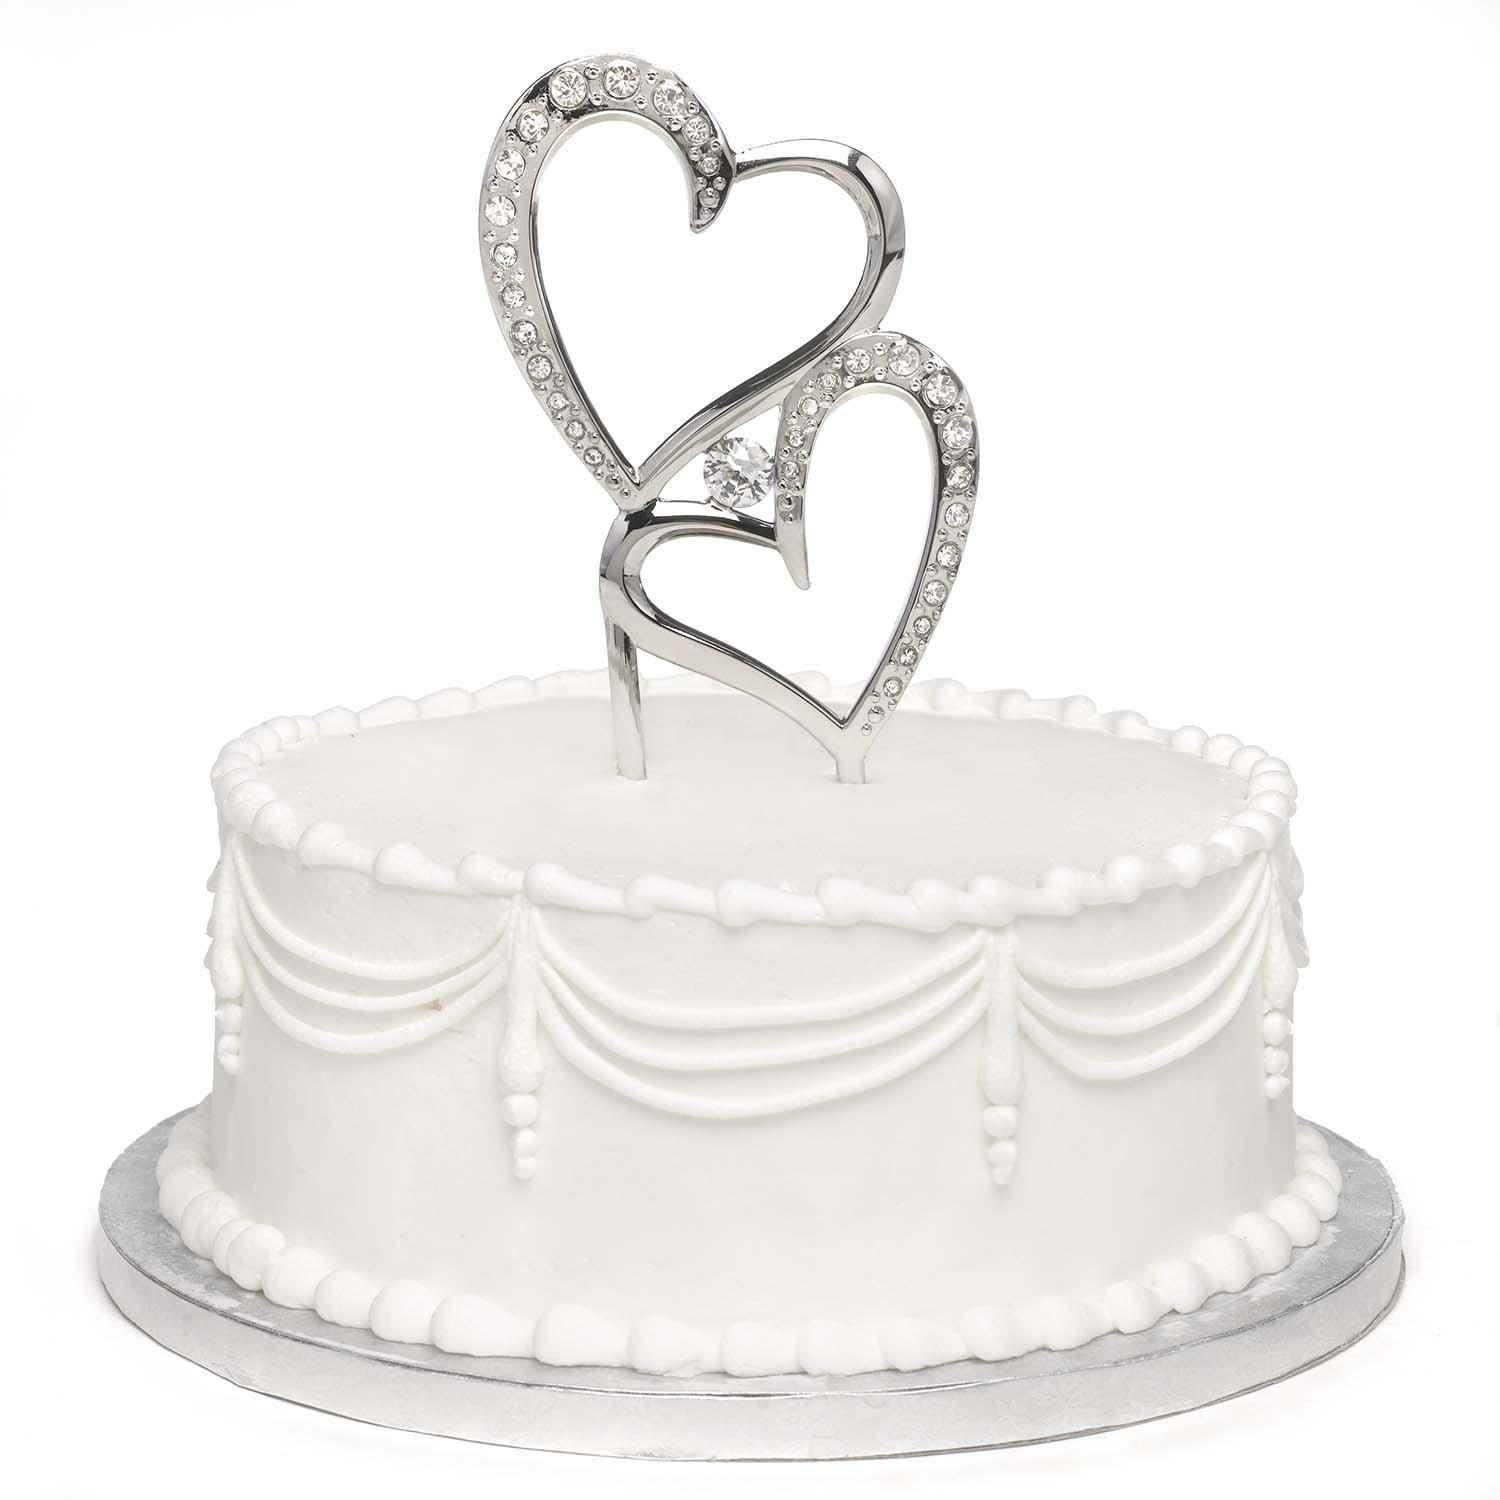 Sparkling Love Wedding Cake Topper made of silver plated metal. The ...